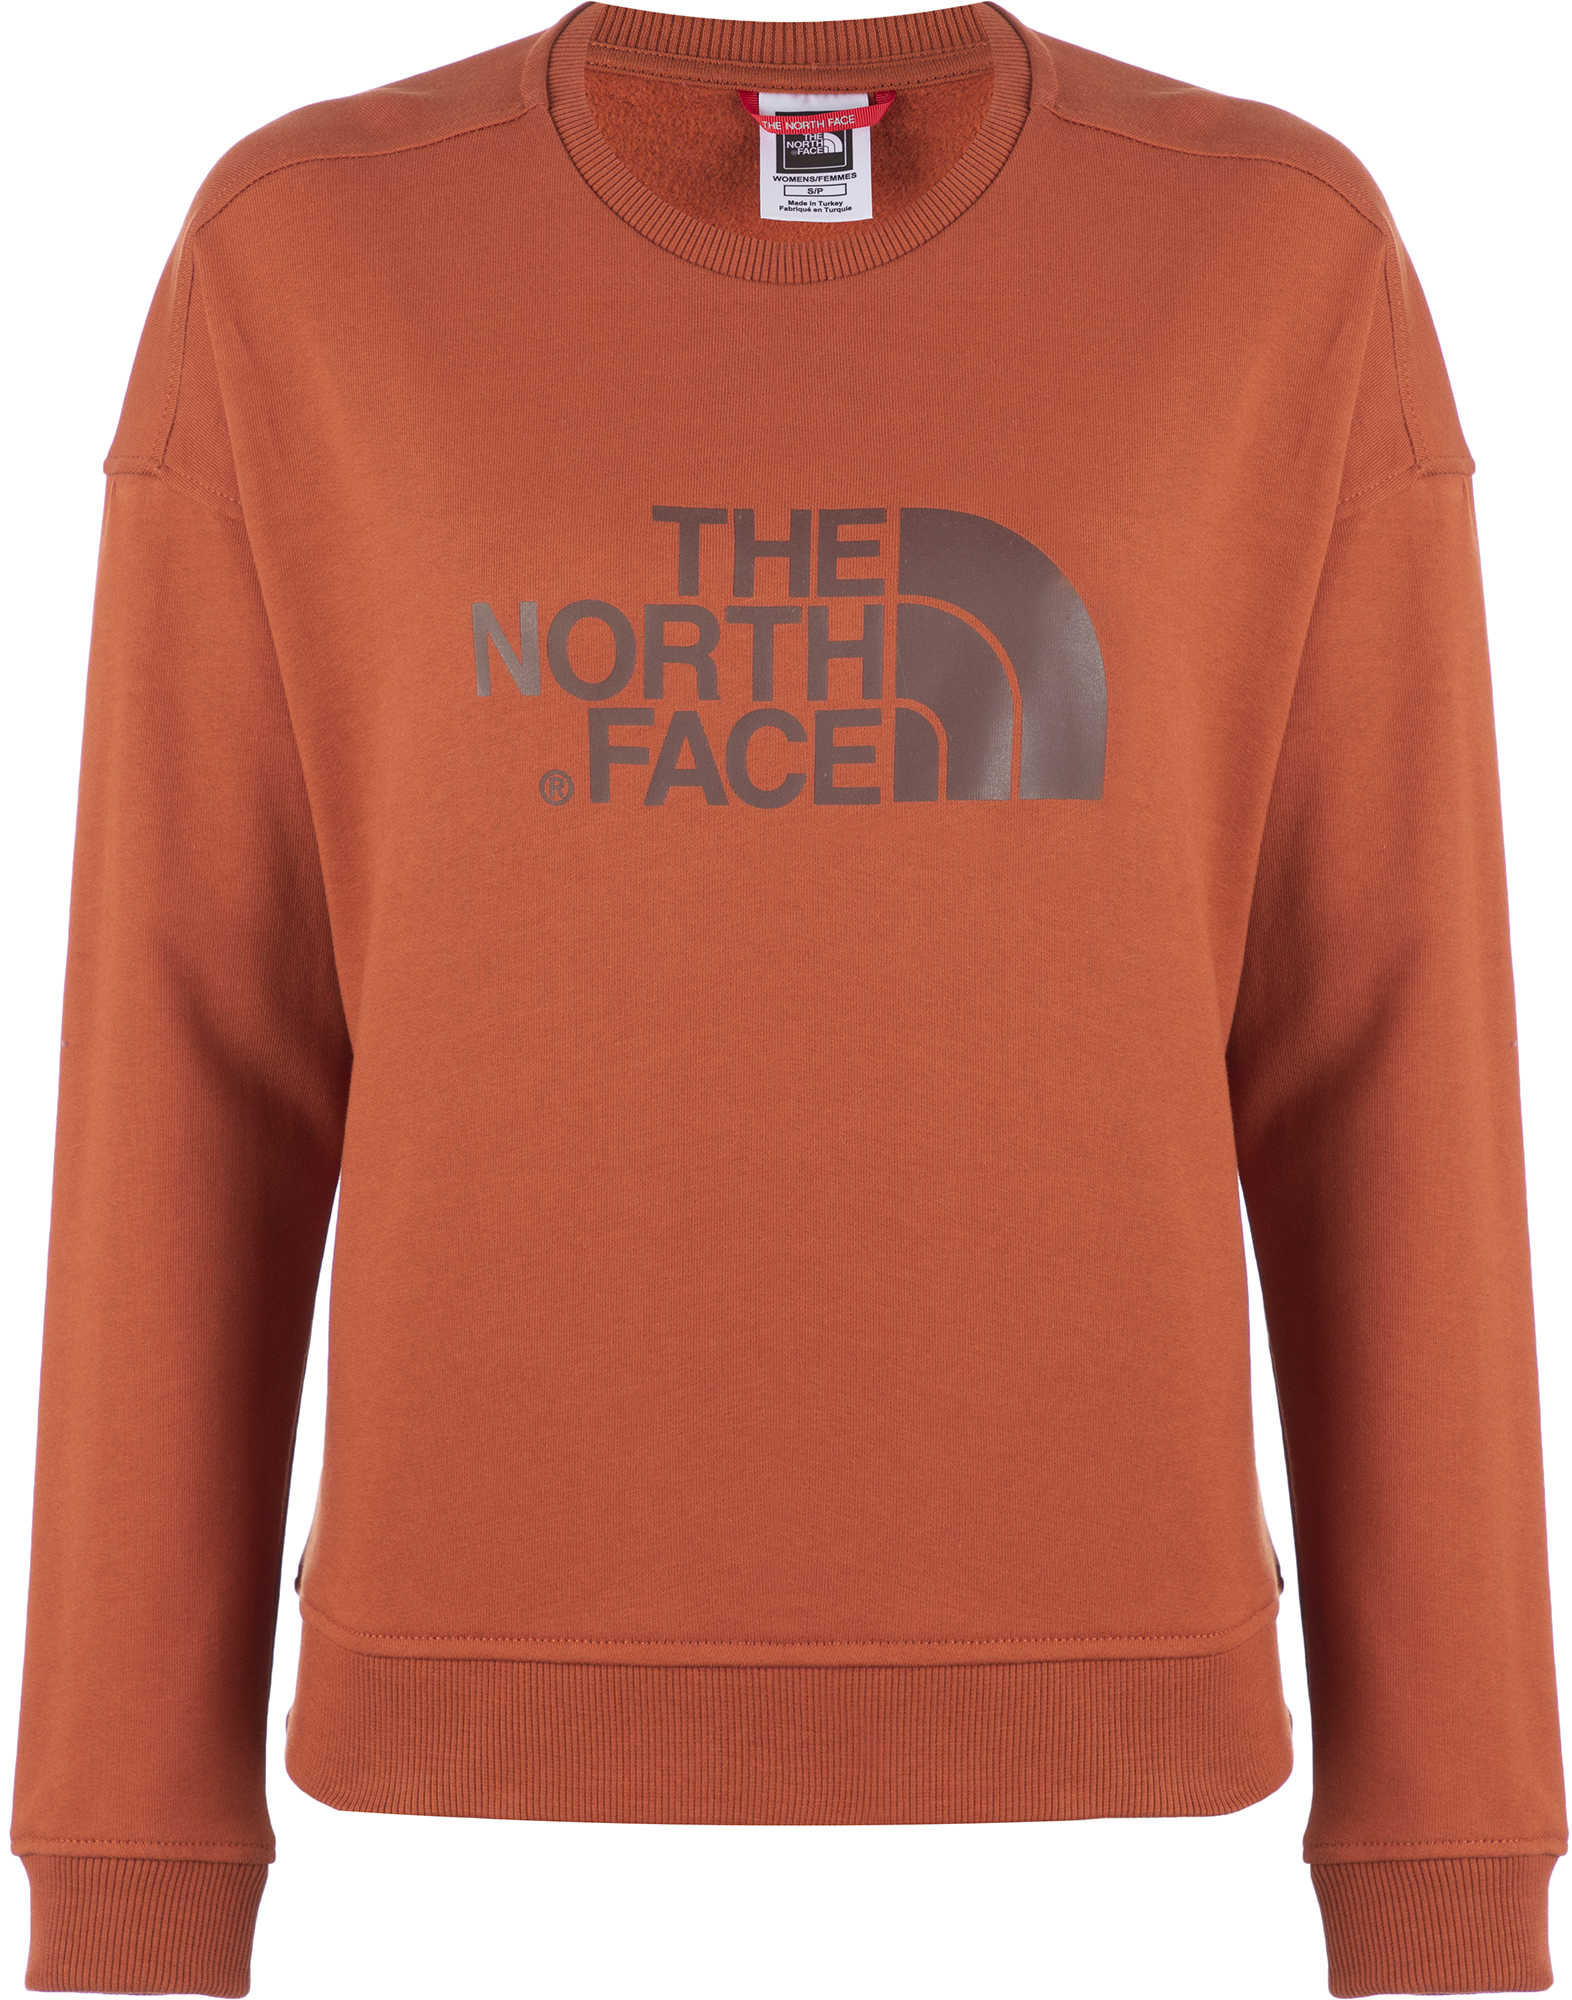 The North Face Свитшот женский The North Face Drew Peak Crew, размер 48 цена